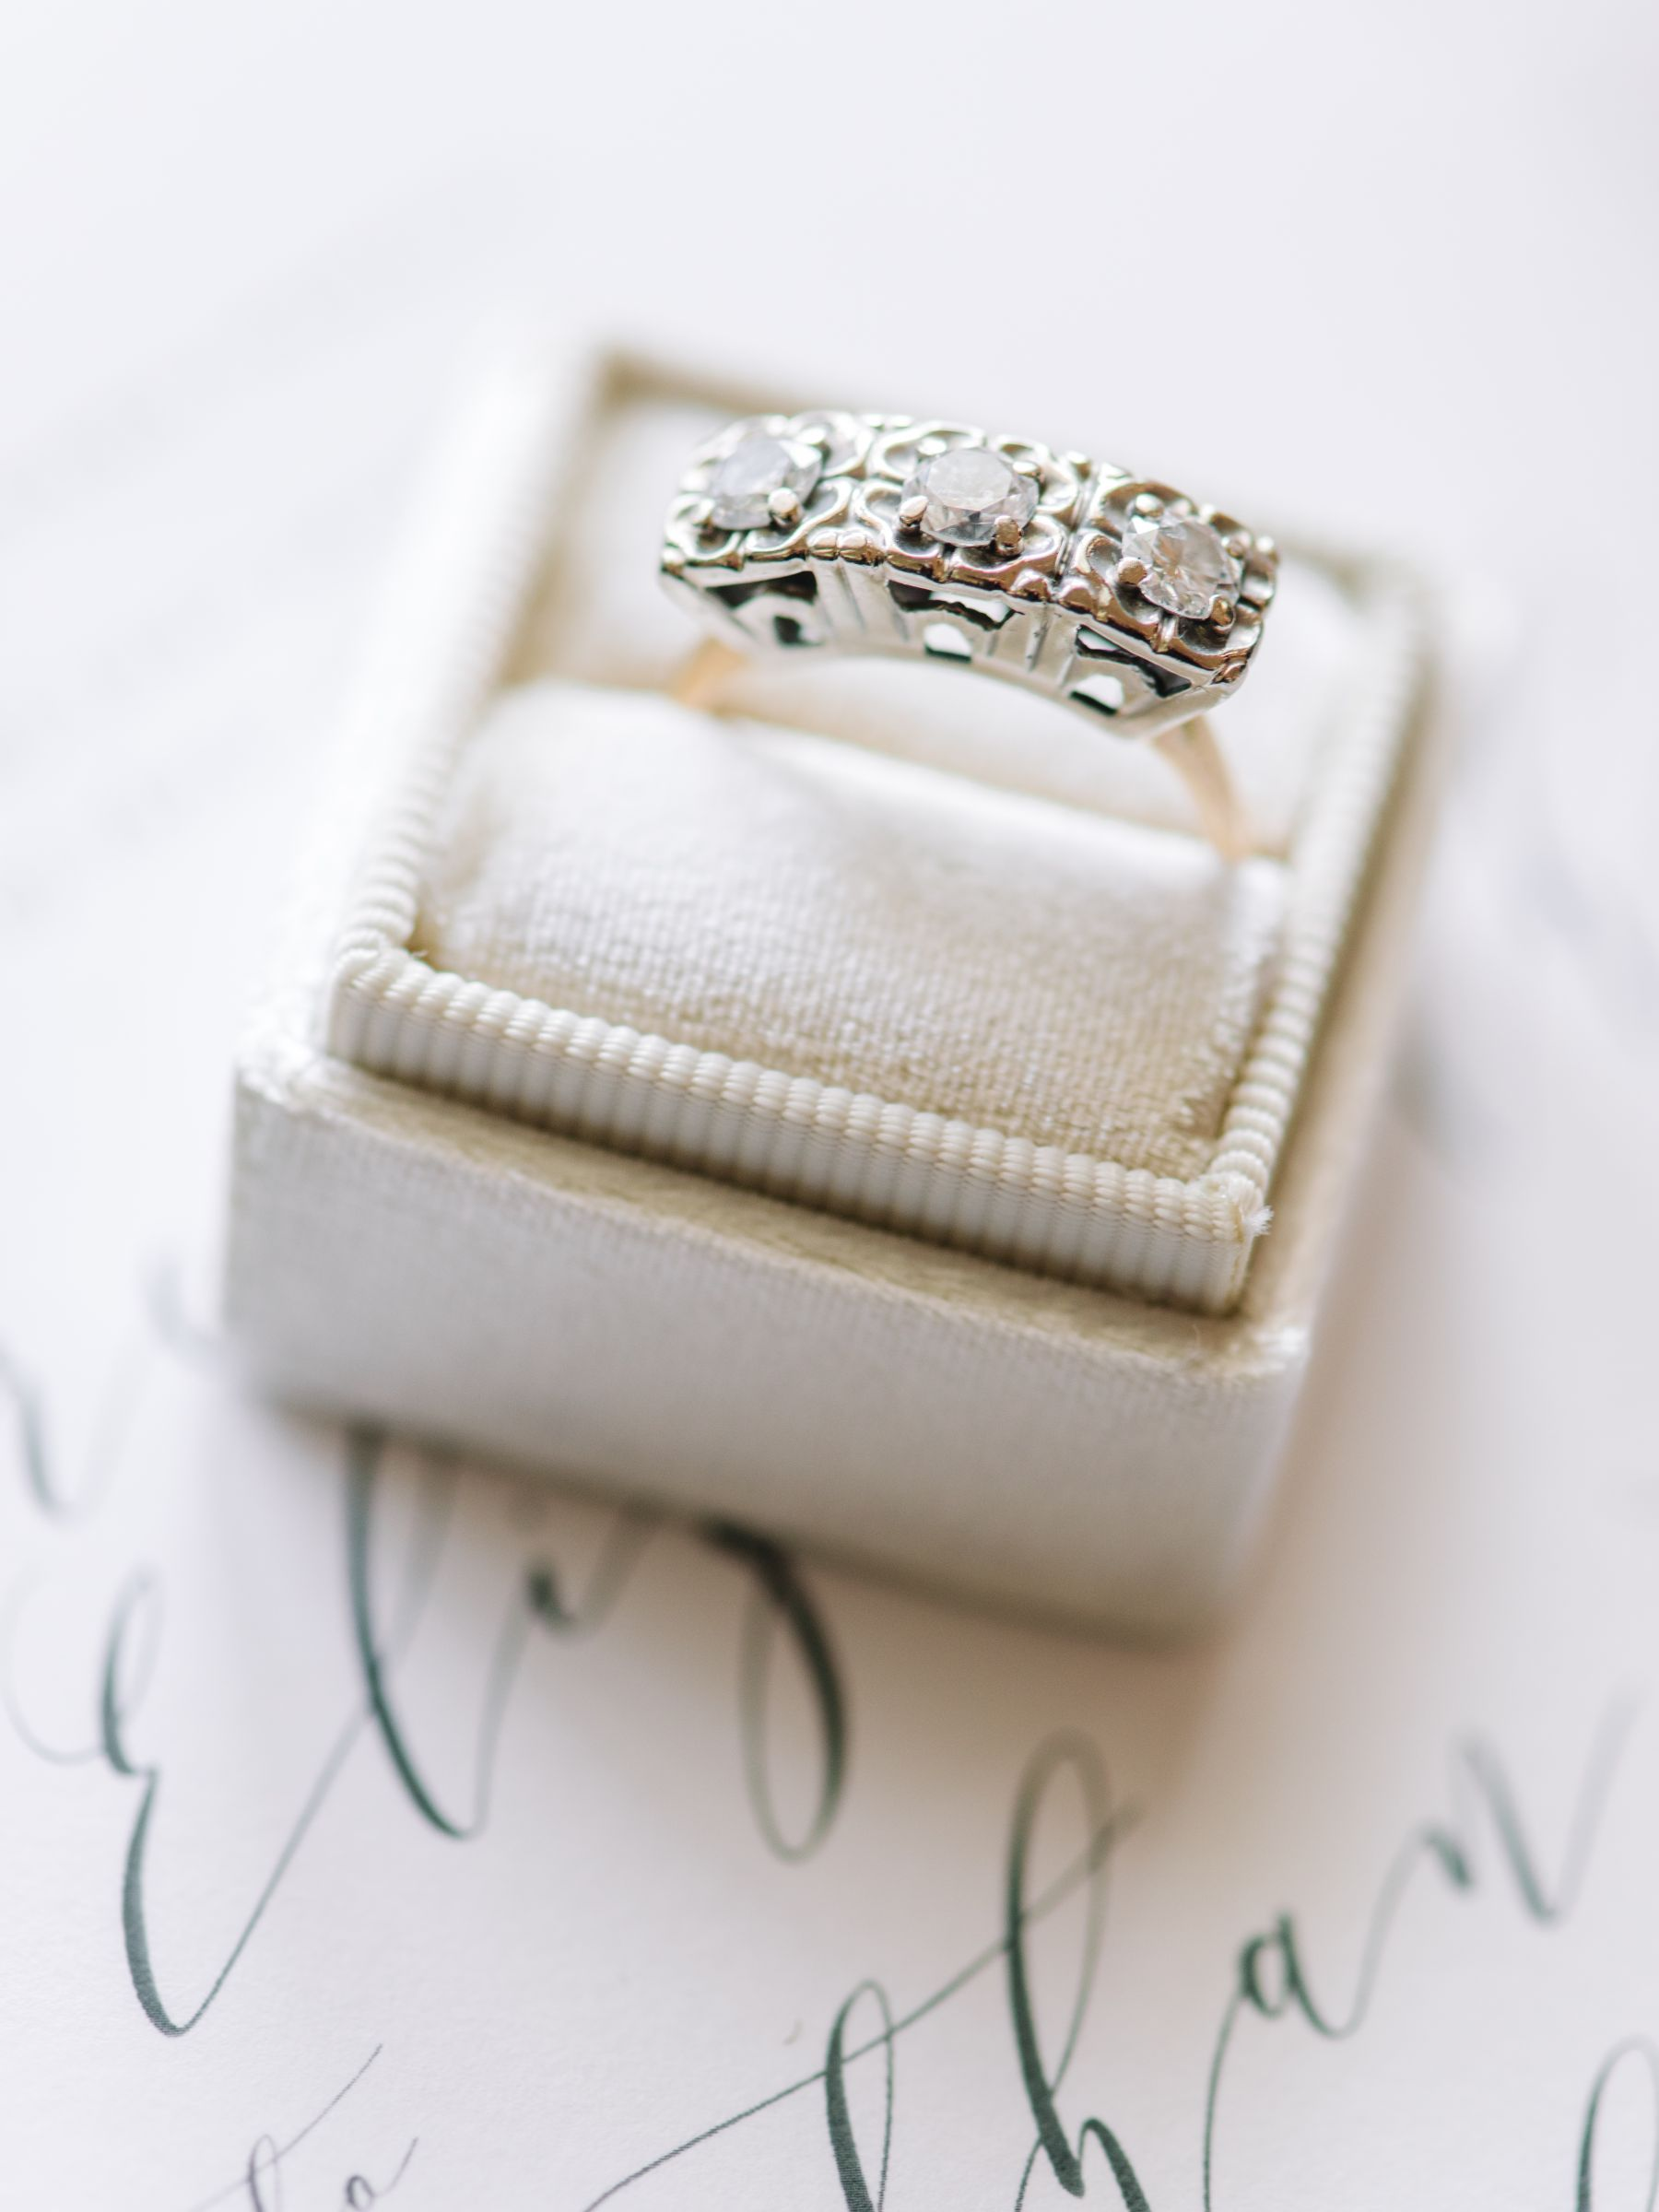 engagement ring in a mrs. box on wedding stationery